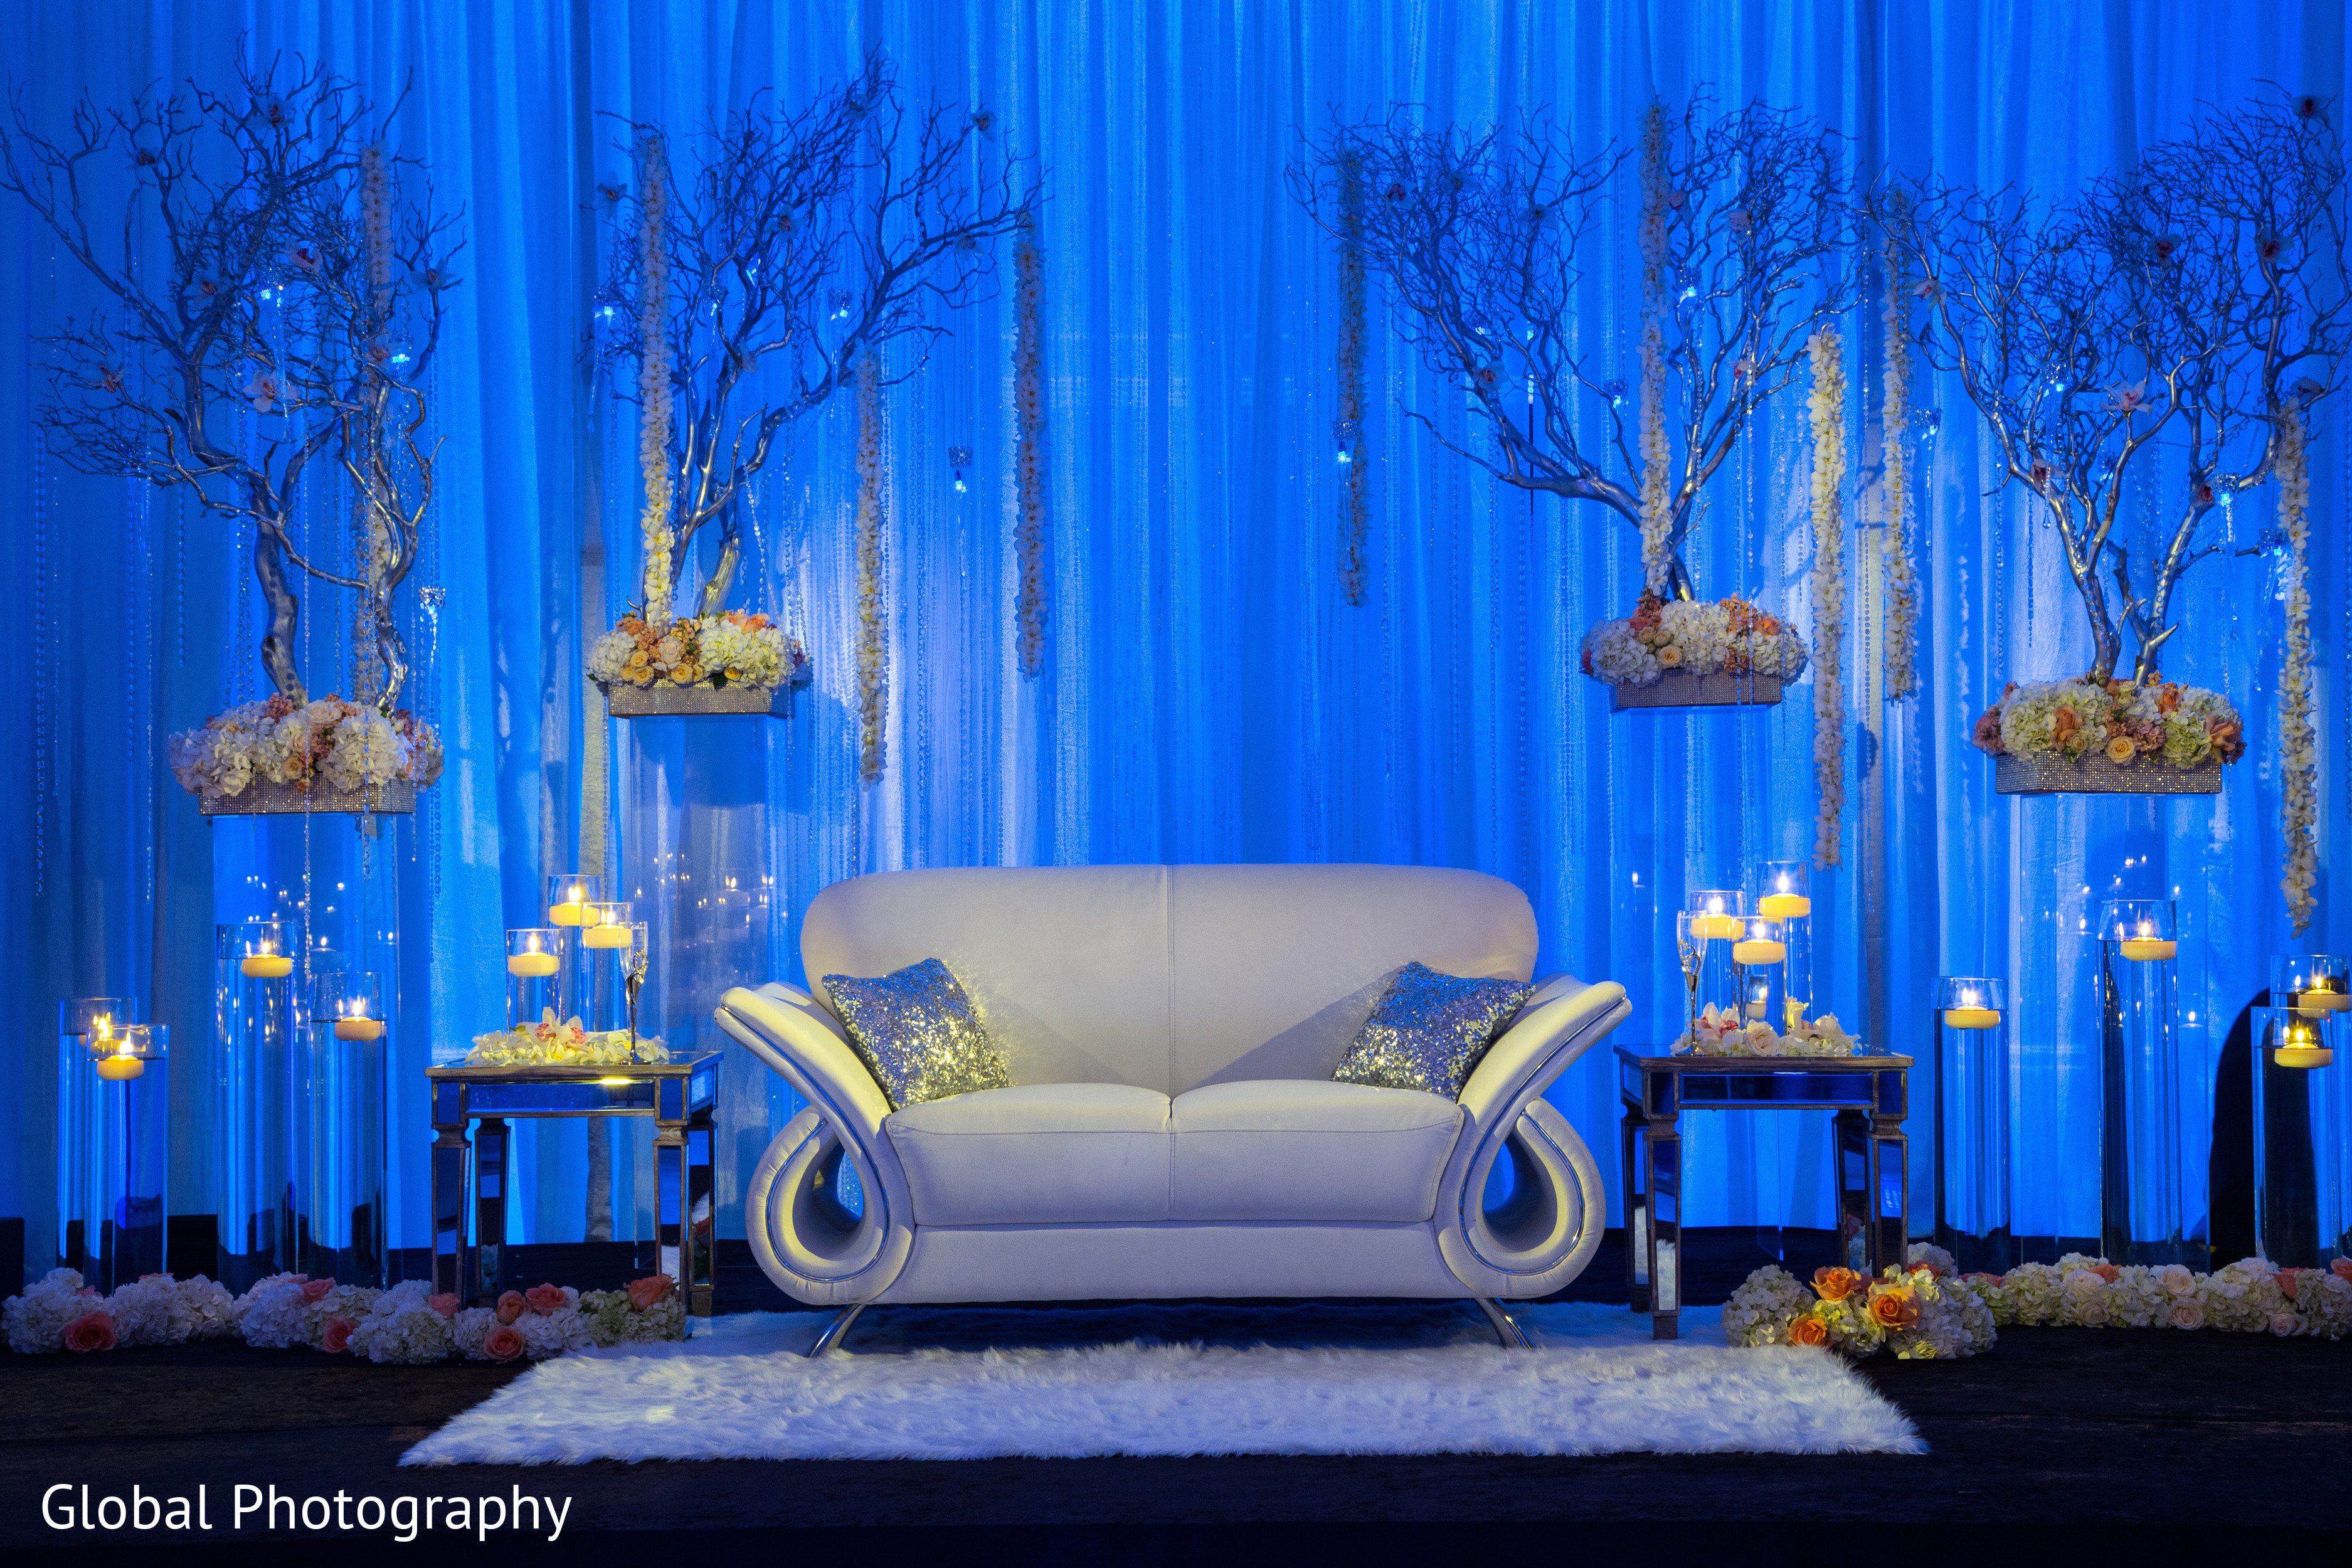 New indian wedding decorations outdoor wedding indian wedding themes ideas image collections wedding decoration junglespirit Gallery